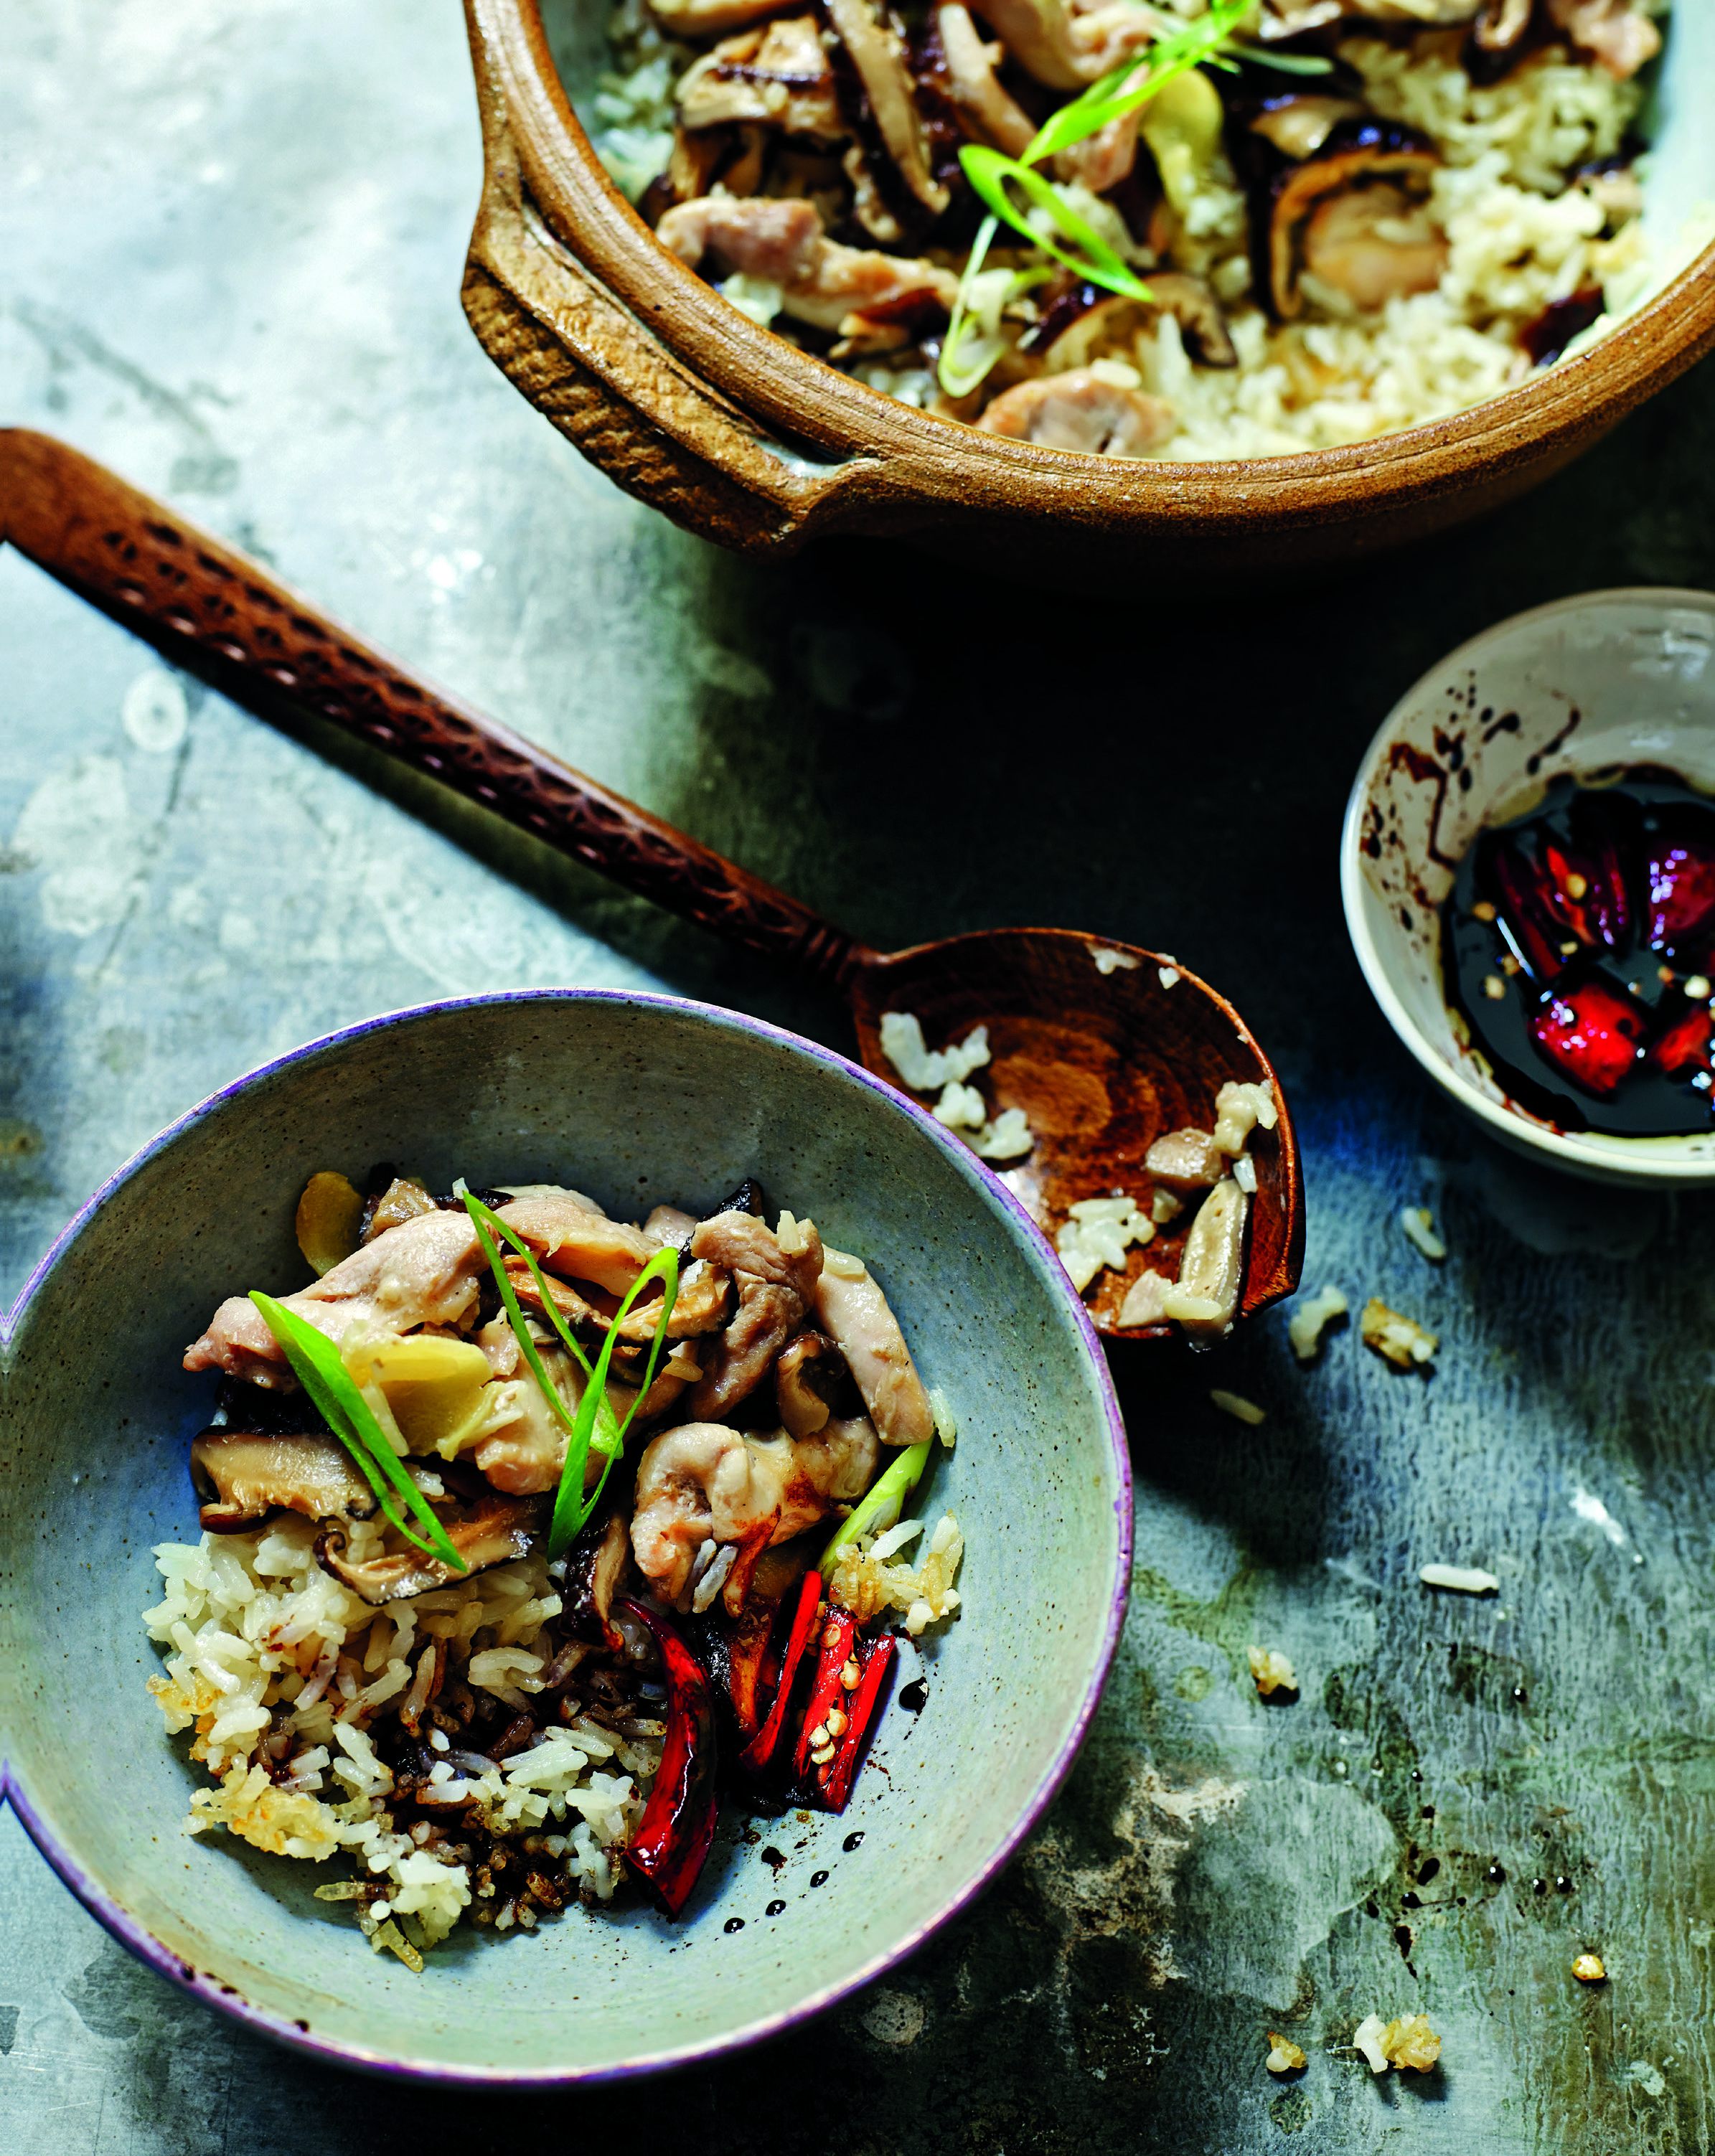 Clay-pot chicken and mushroom rice with chilli and garlic sauce